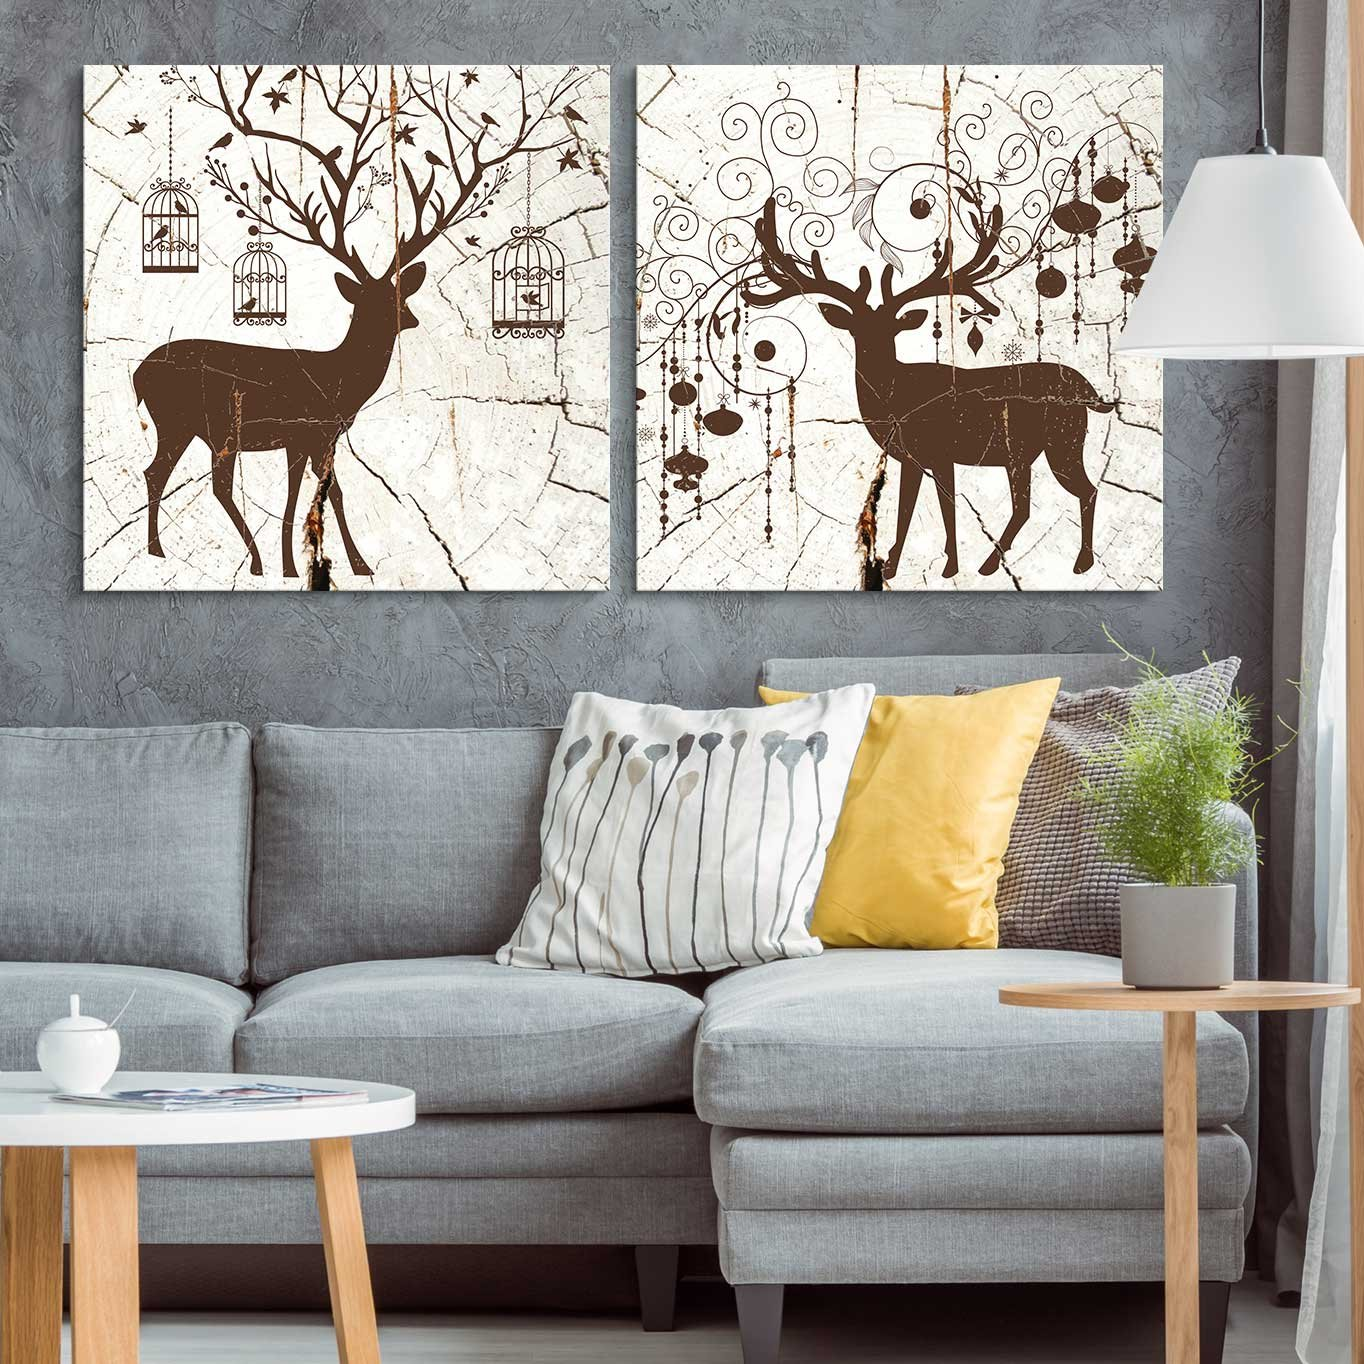 wall26 - 2 Panel Square Canvas Wall Art - Bohemian Deer Wood Effect Canvas - Giclee Print Gallery Wrap Modern Home Decor Ready to Hang - 24''x24'' x 2 Panels